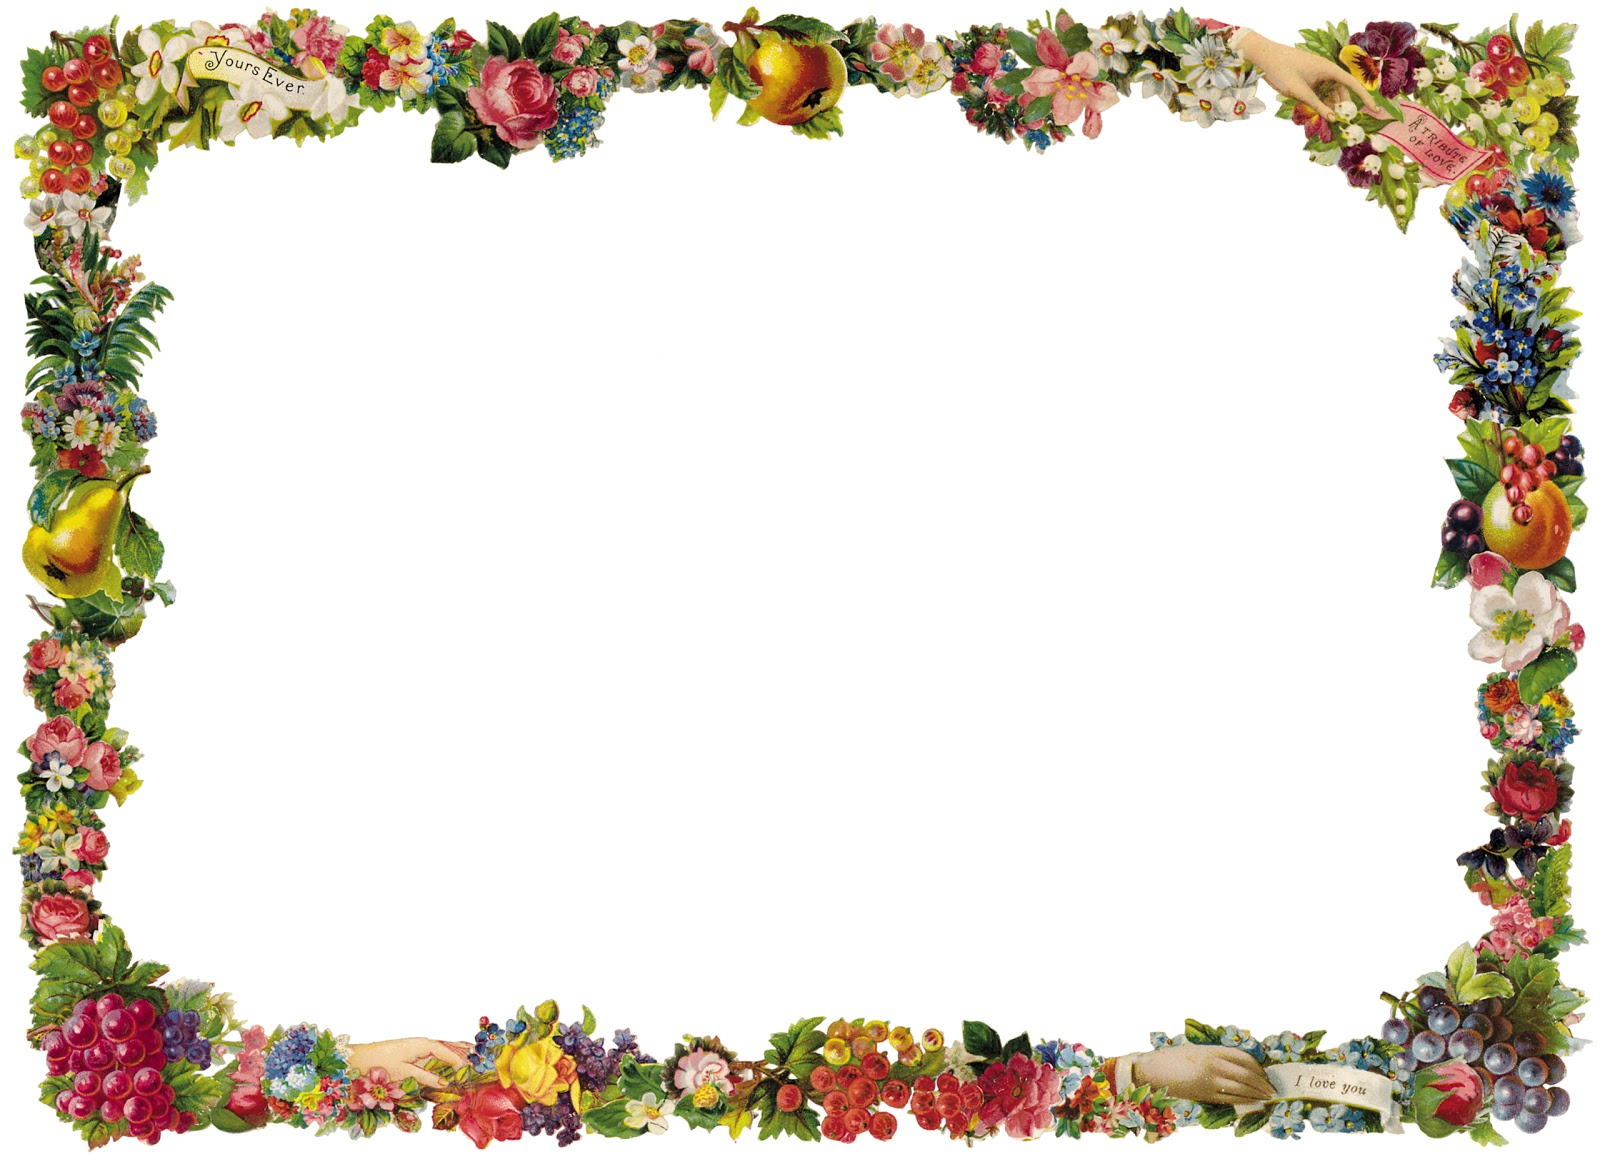 Vintage Fruit and Flower Frame